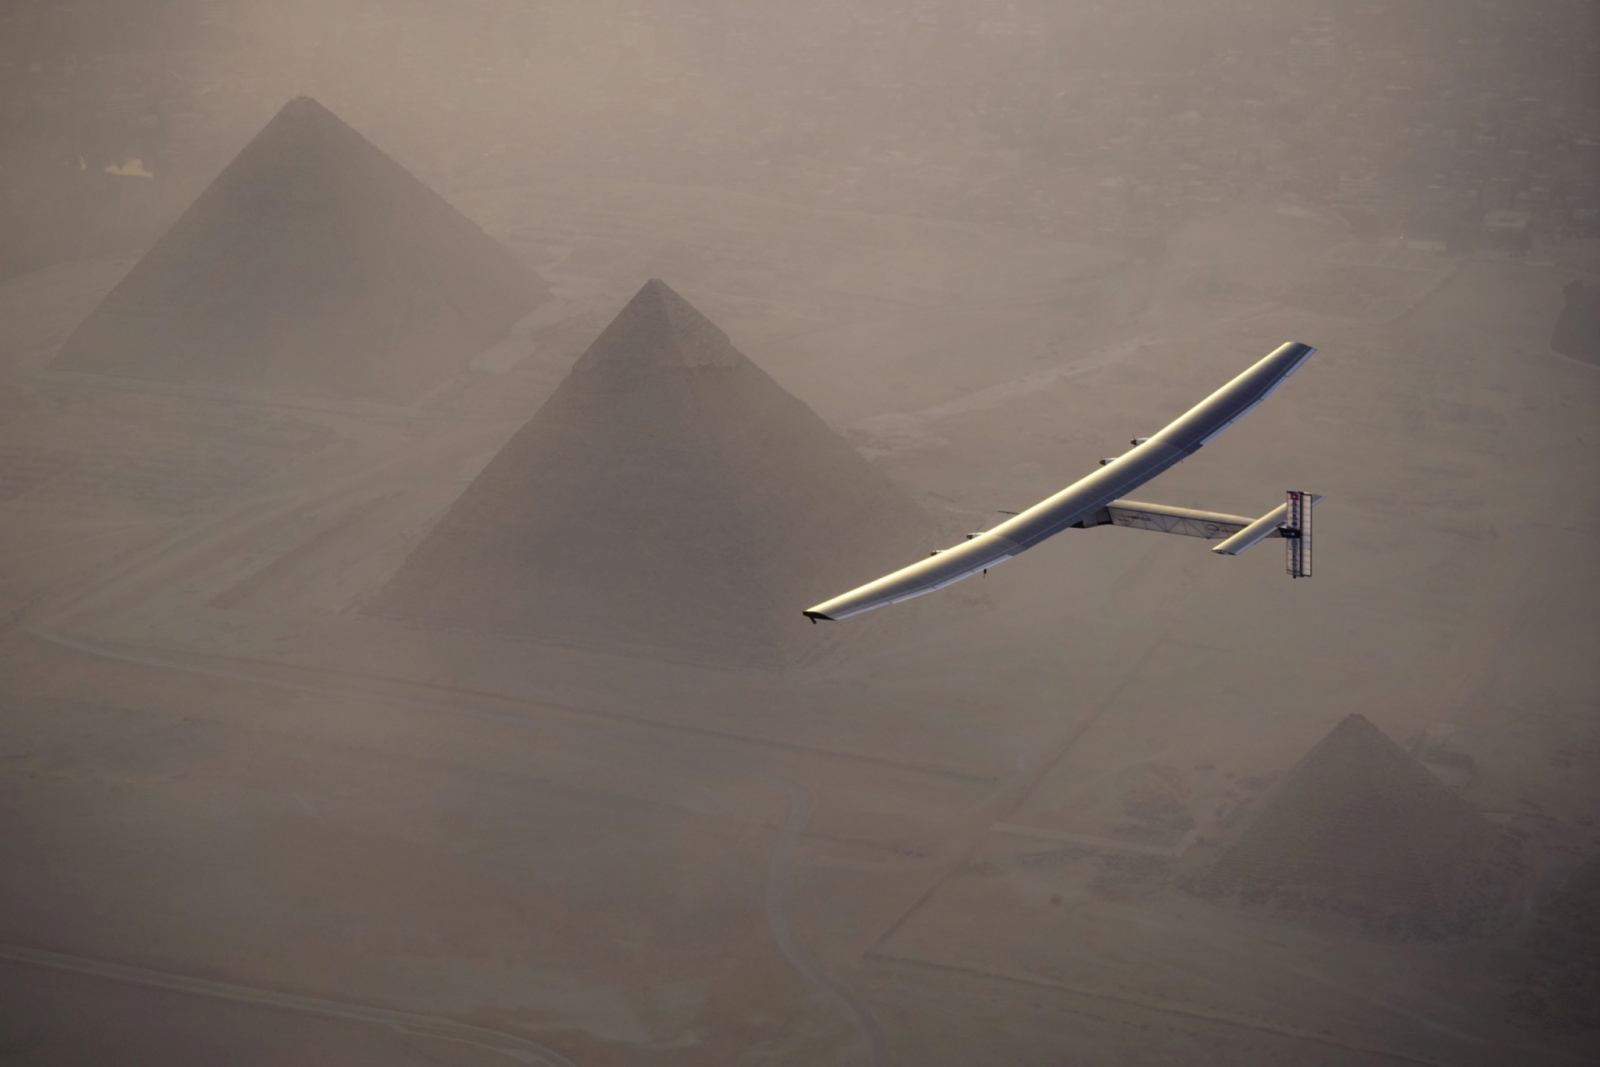 solar impulse 2 flight pyramids egypt